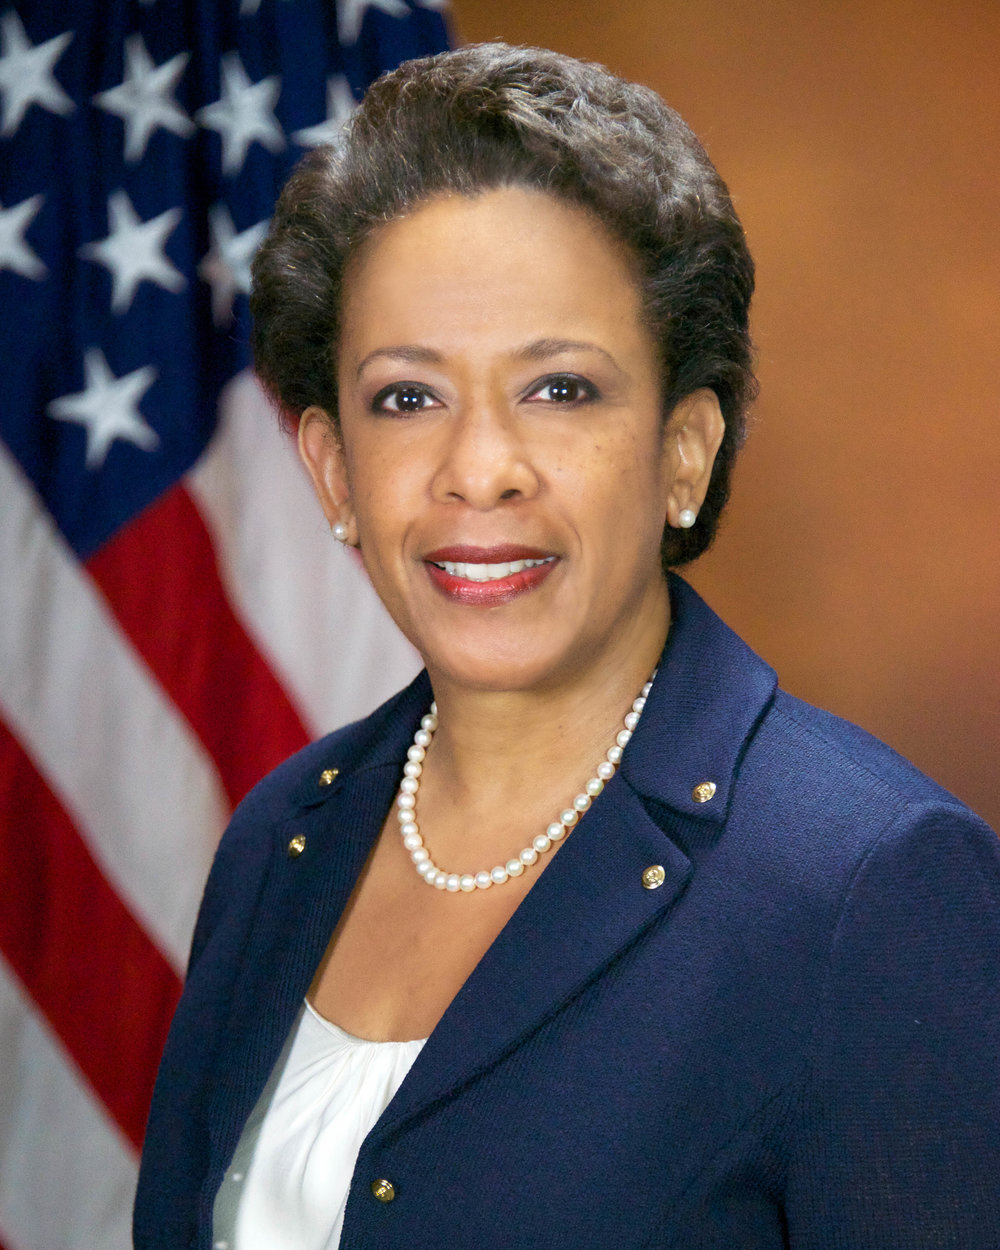 U.S. Attorney General  Loretta Lynch  was formerly the nation's top Federal prosecutor in New York's eastern district. Source : Official Portrait, U.S. Department of Justice/Public Domain